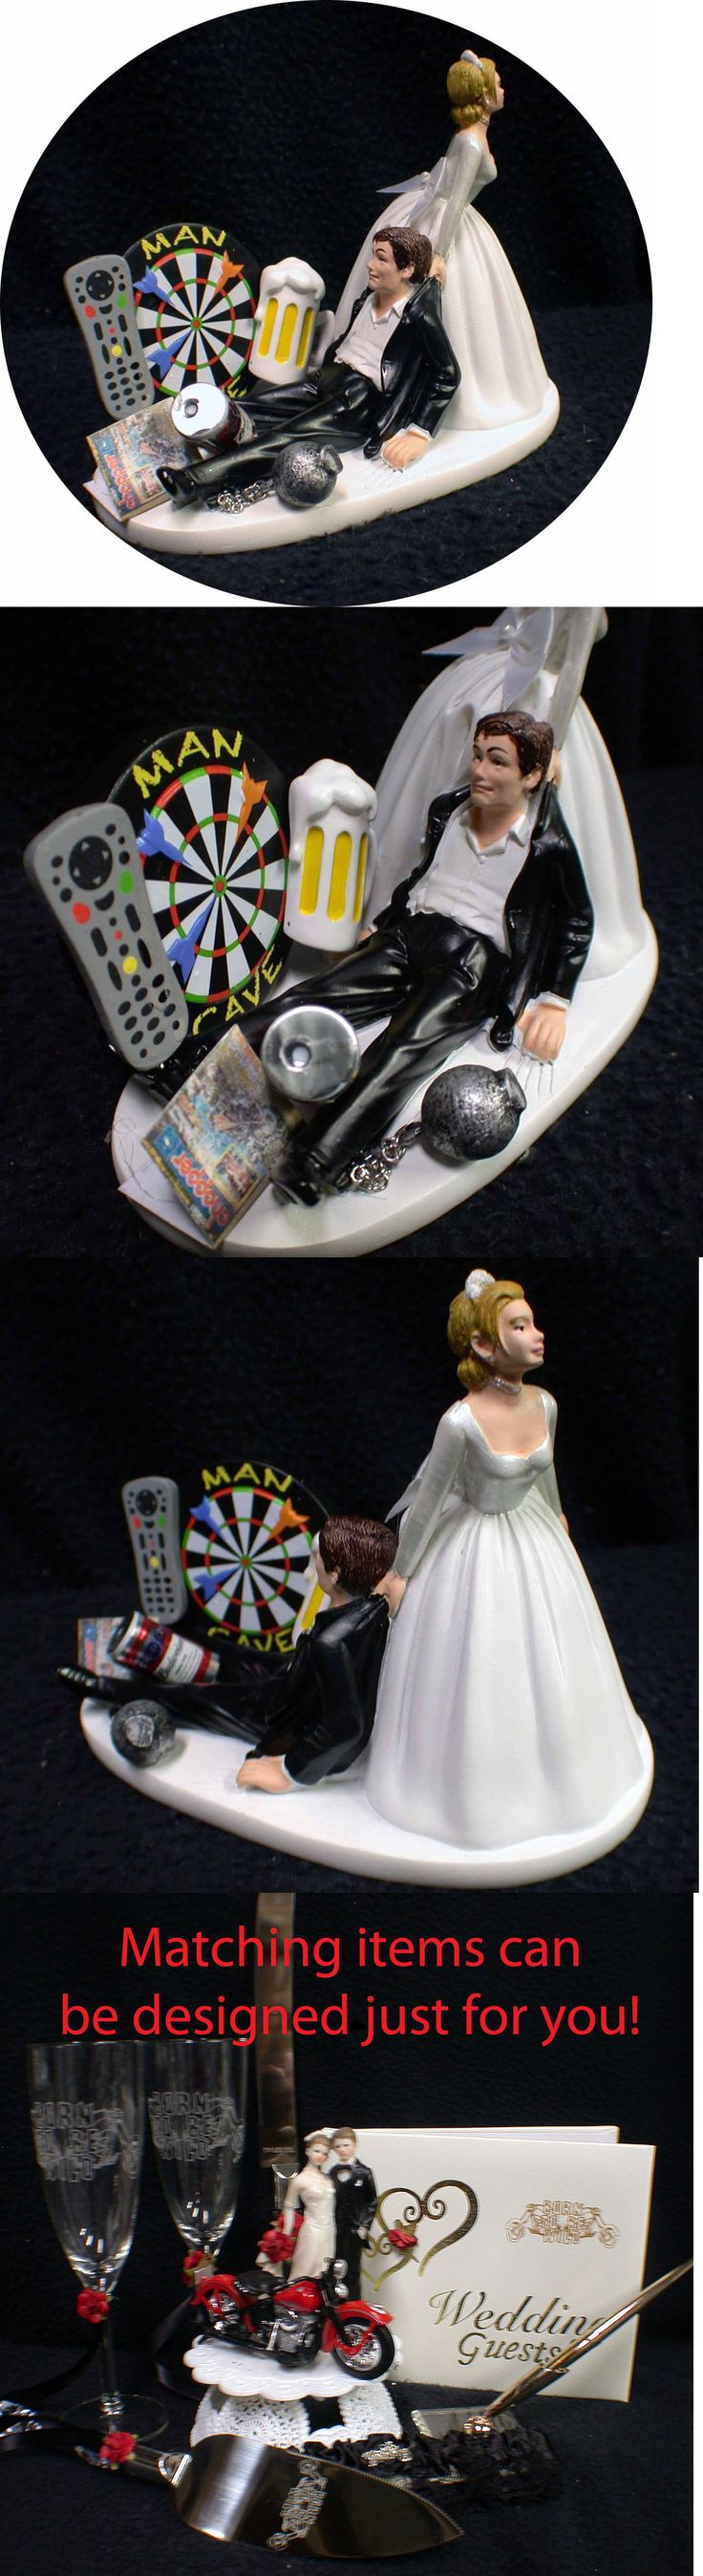 Toy box metal decor wall art shop play children store a180 ebay - Wedding Cake Toppers 20935 Man Cave Darts Board Wedding Cake Topper Bride And Groom